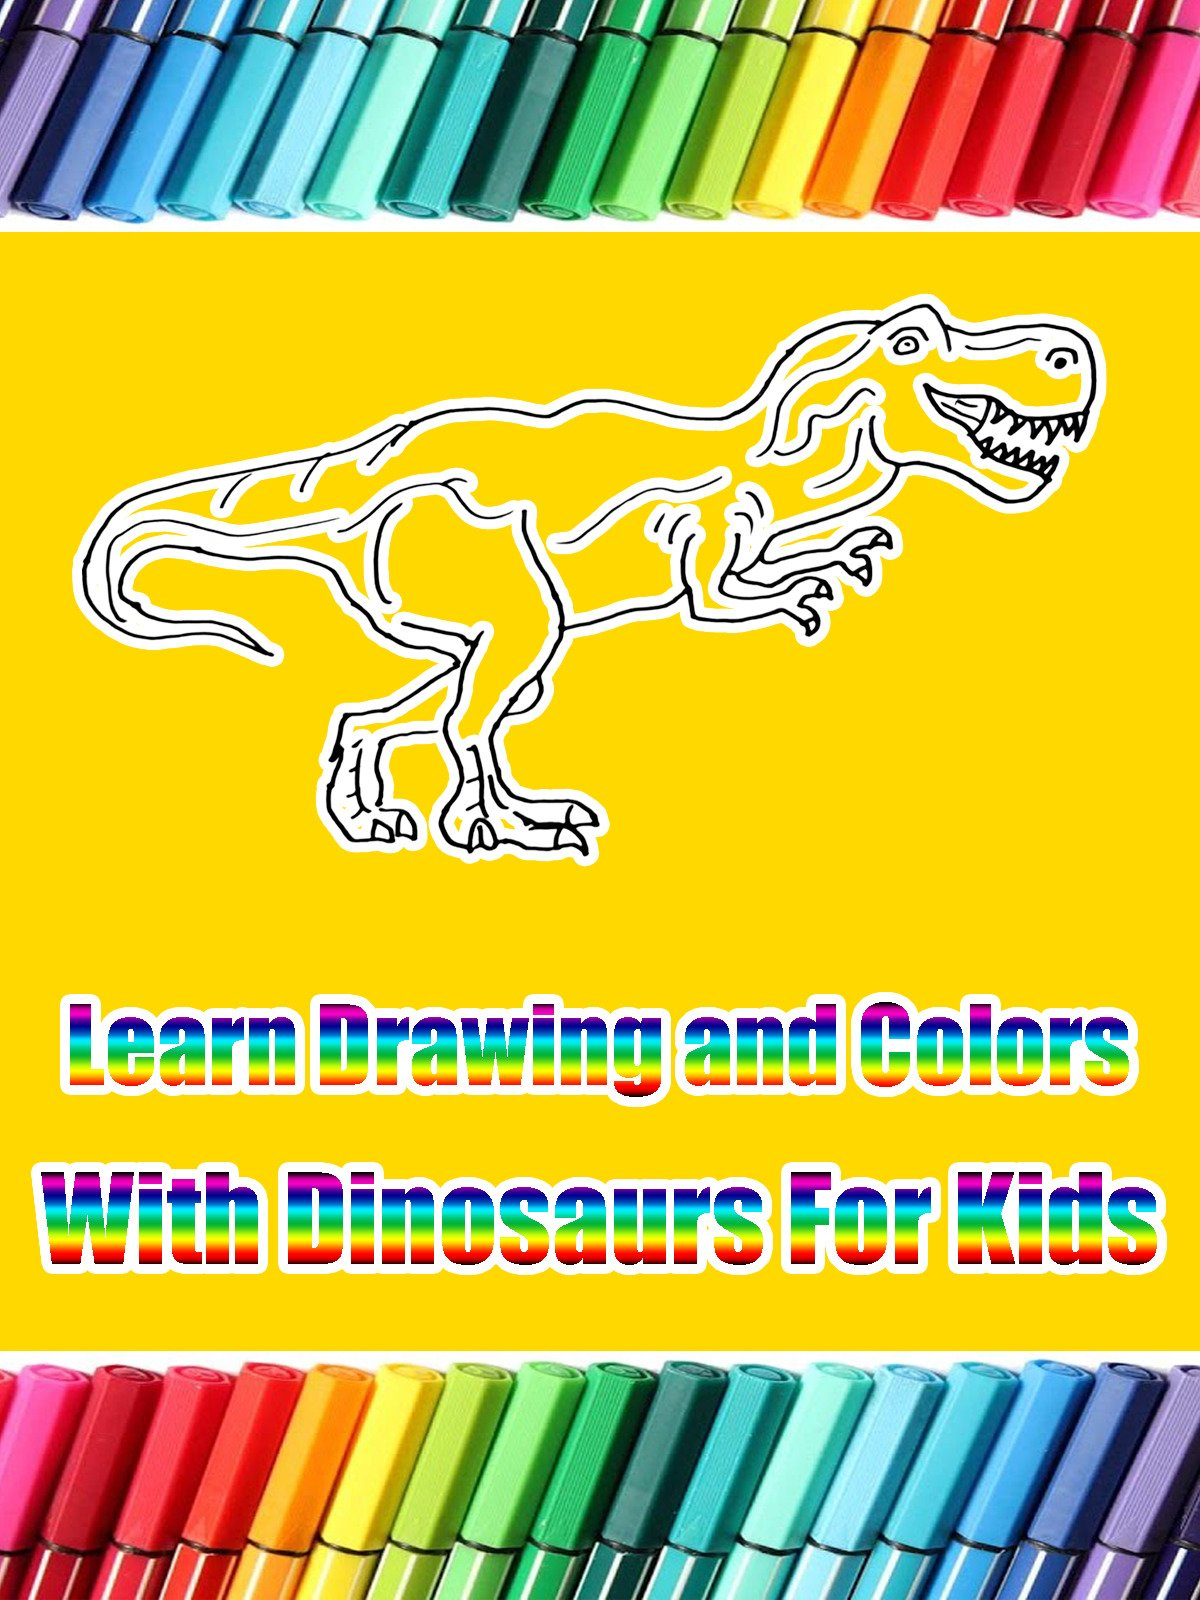 Learn Drawing and Colors With Dinosaurs For Kids